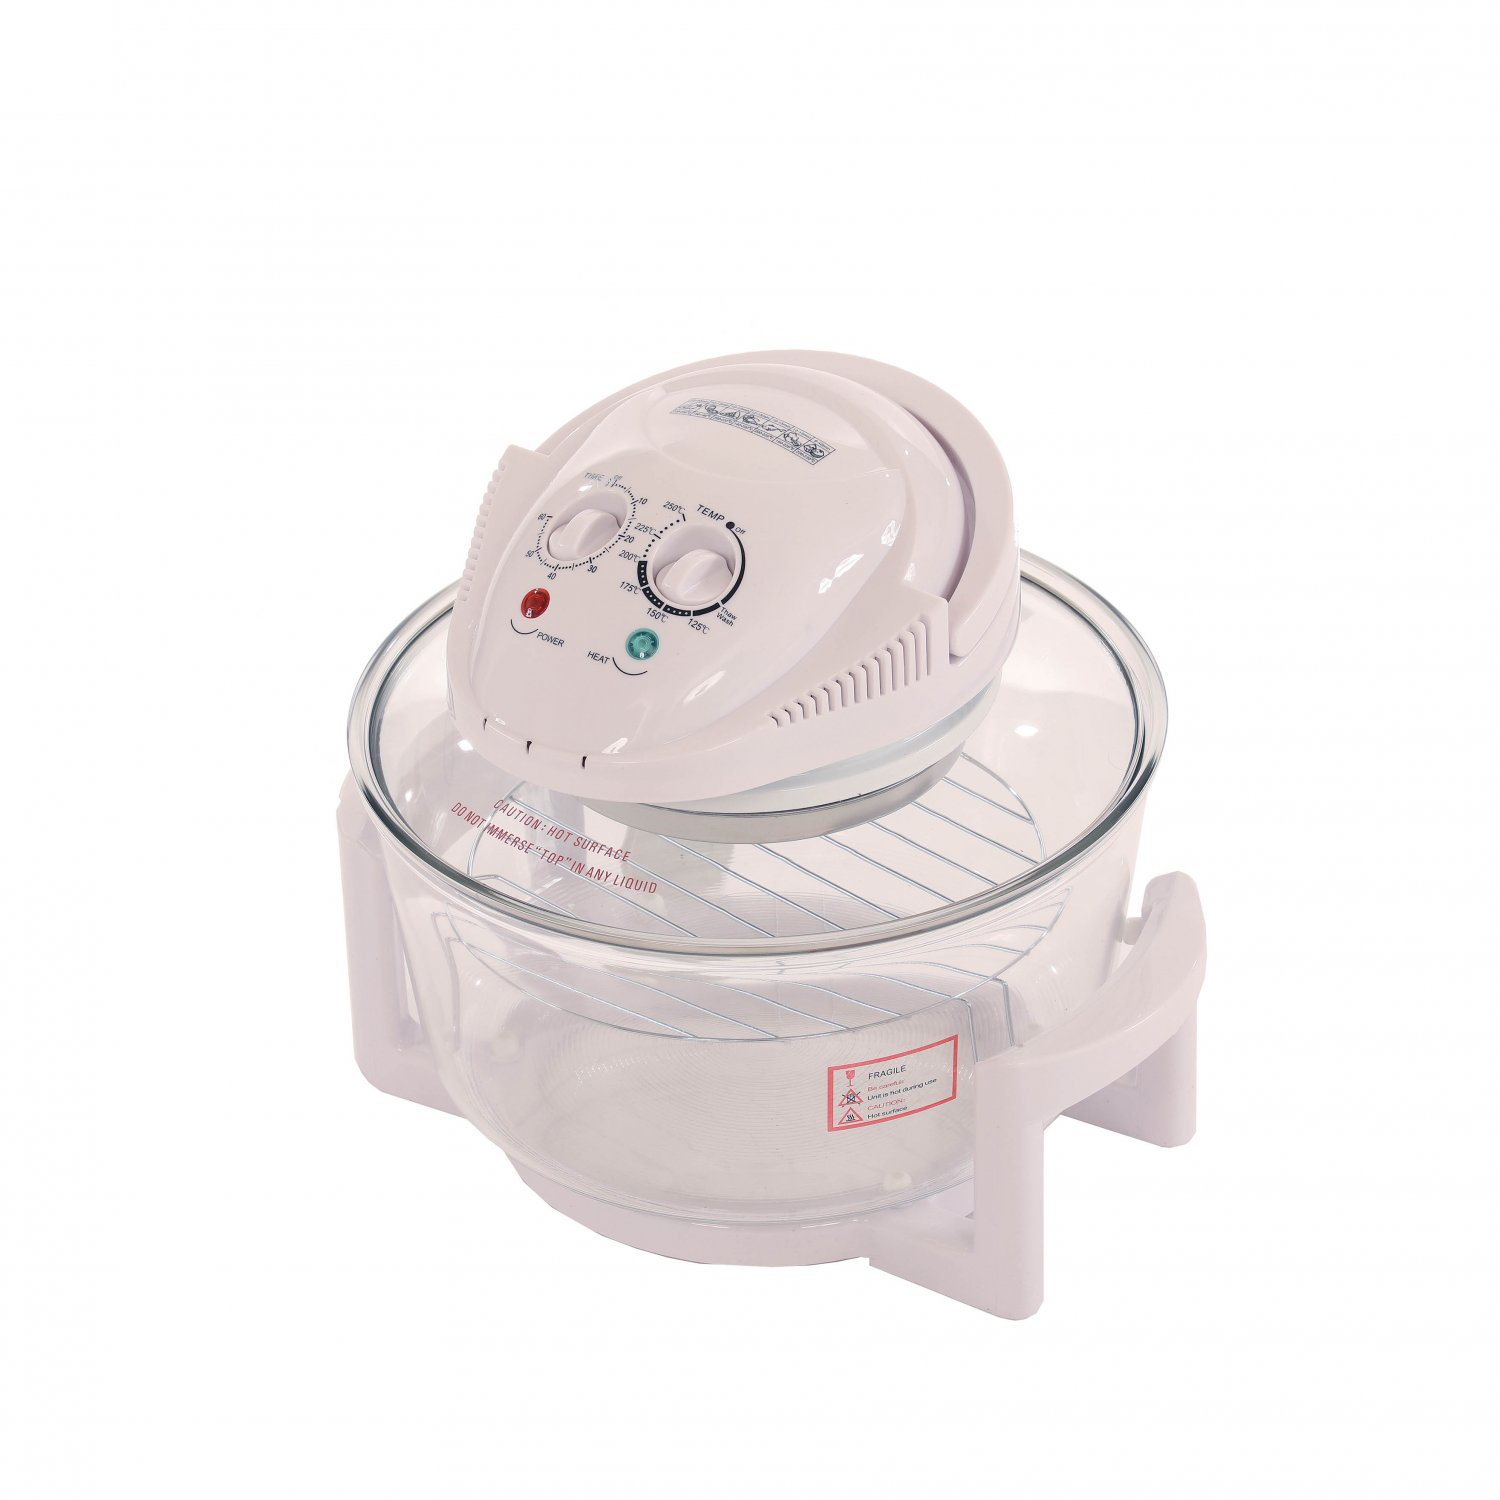 12L Litre White Portable Halogen Convection Oven Cooker 1400w